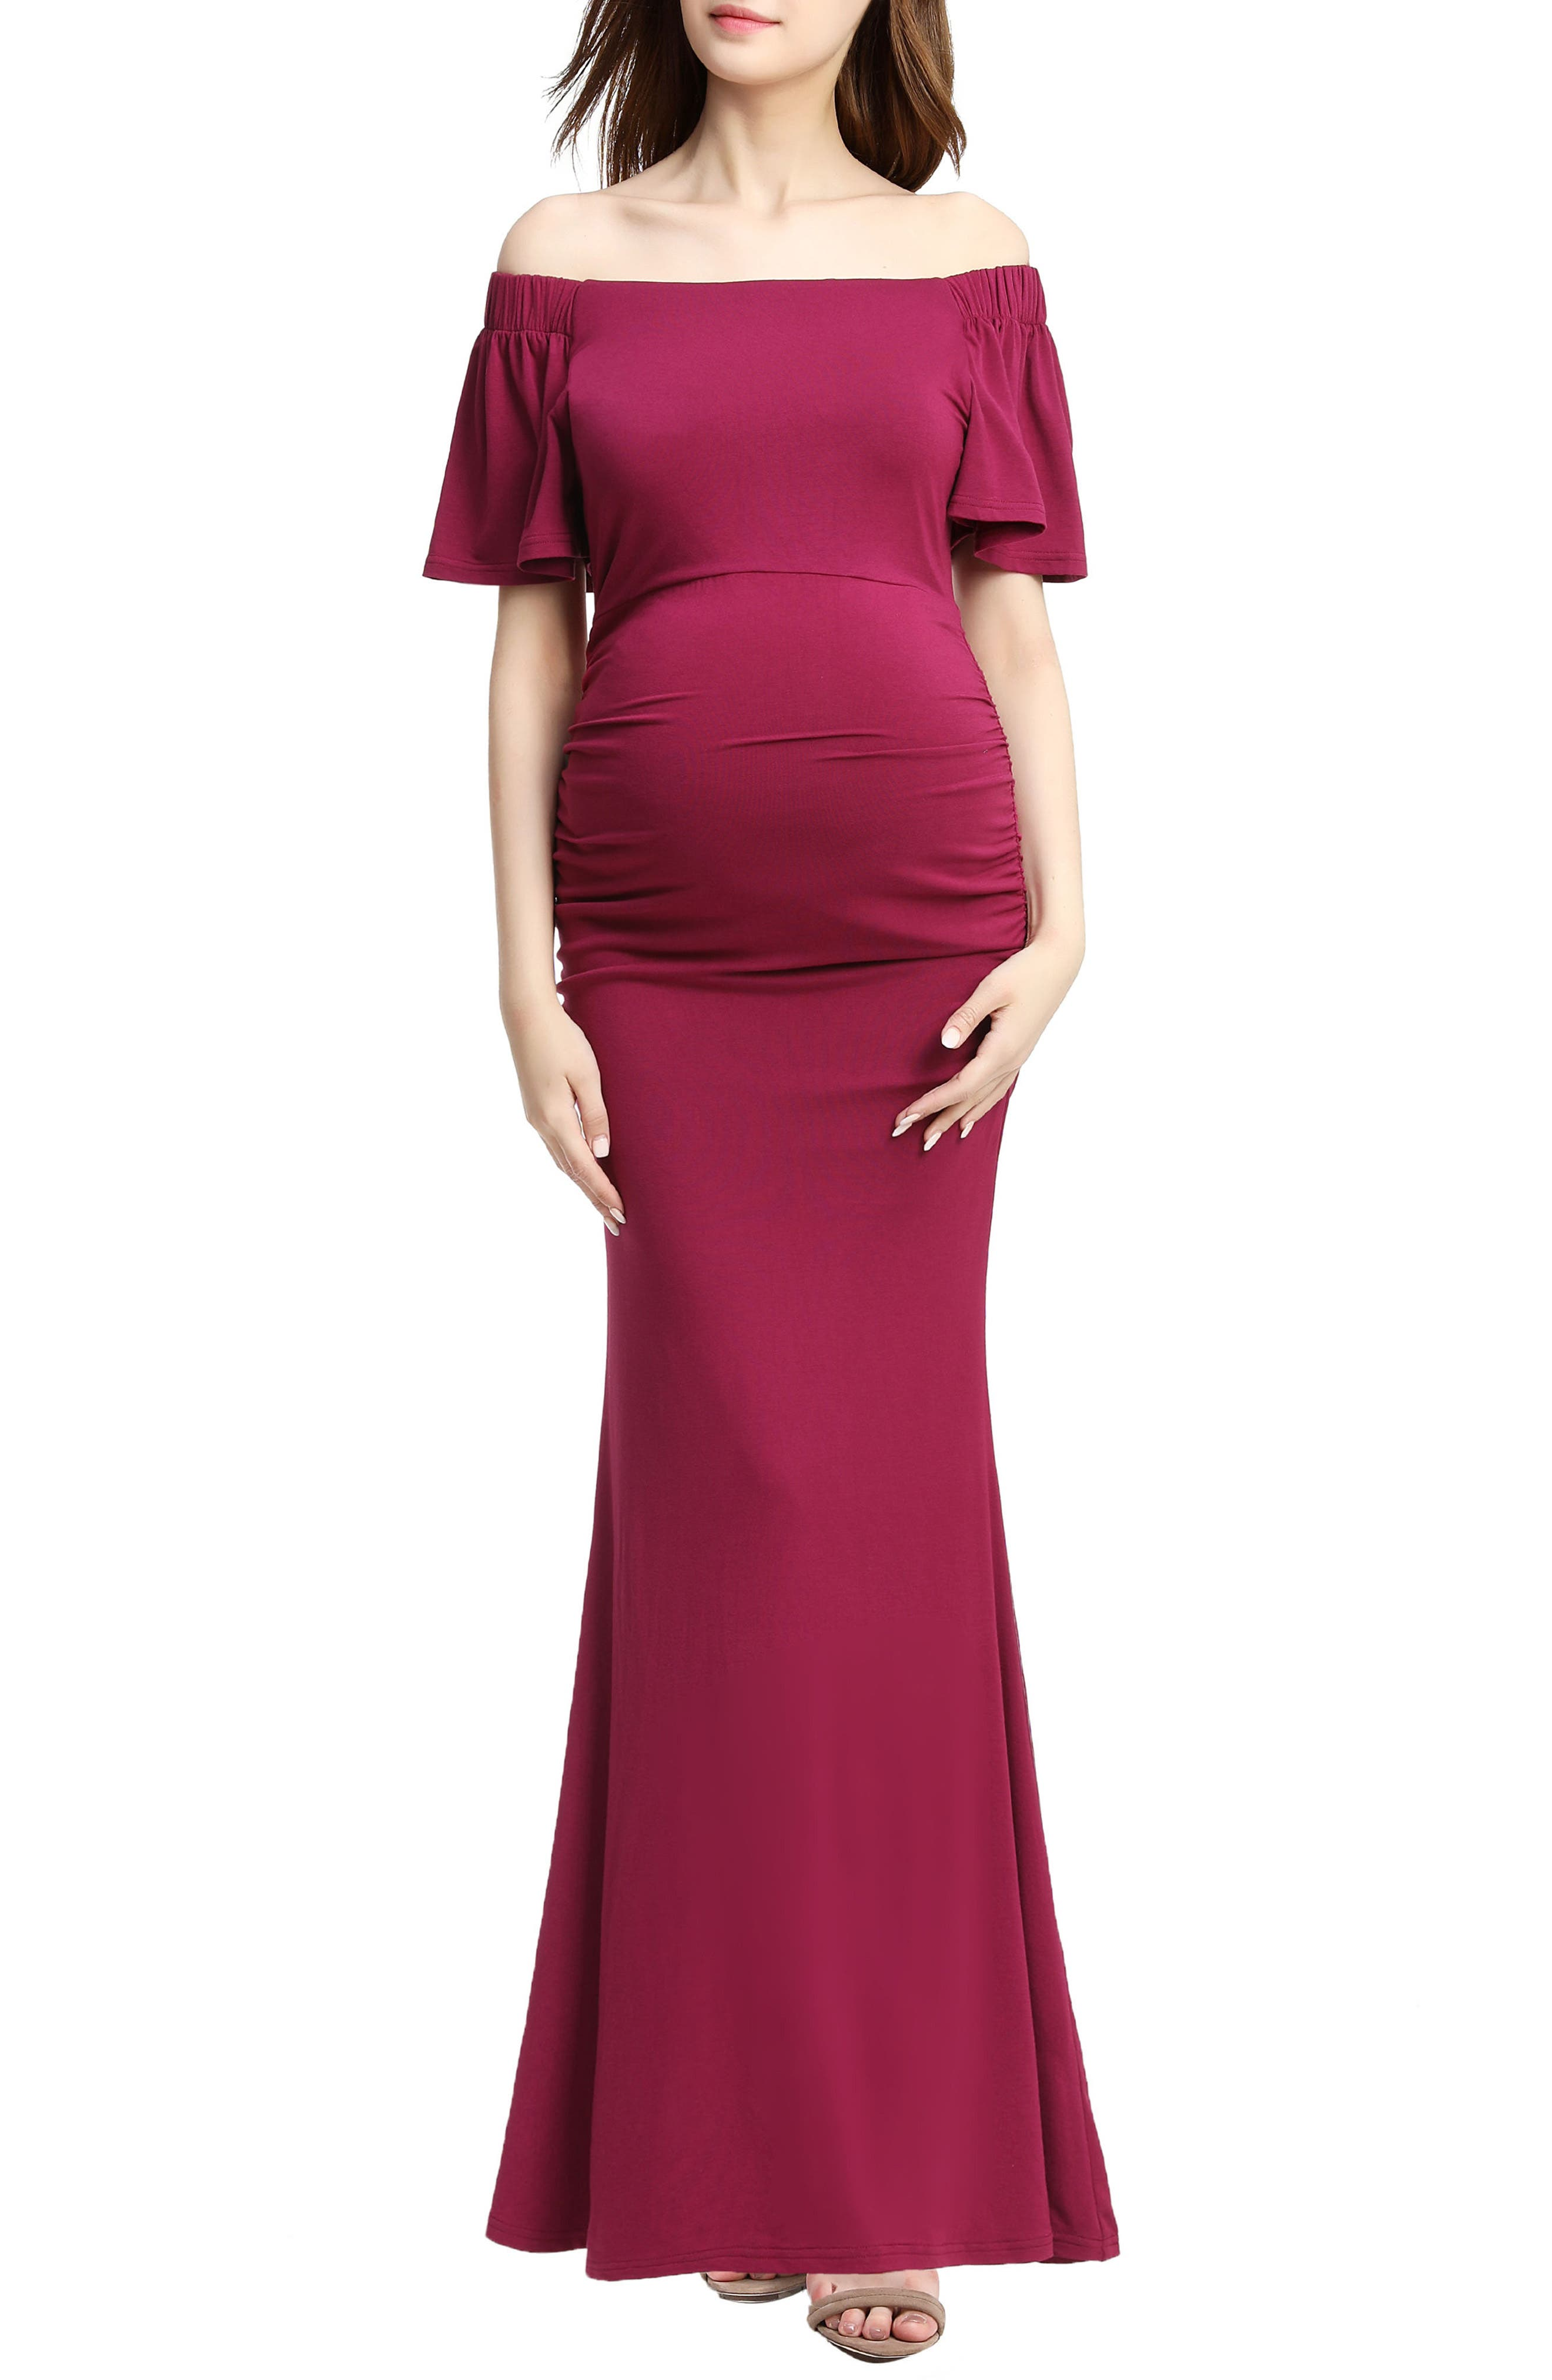 Kimi And Kai Abigail Off The Shoulder Maternity Dress, Pink